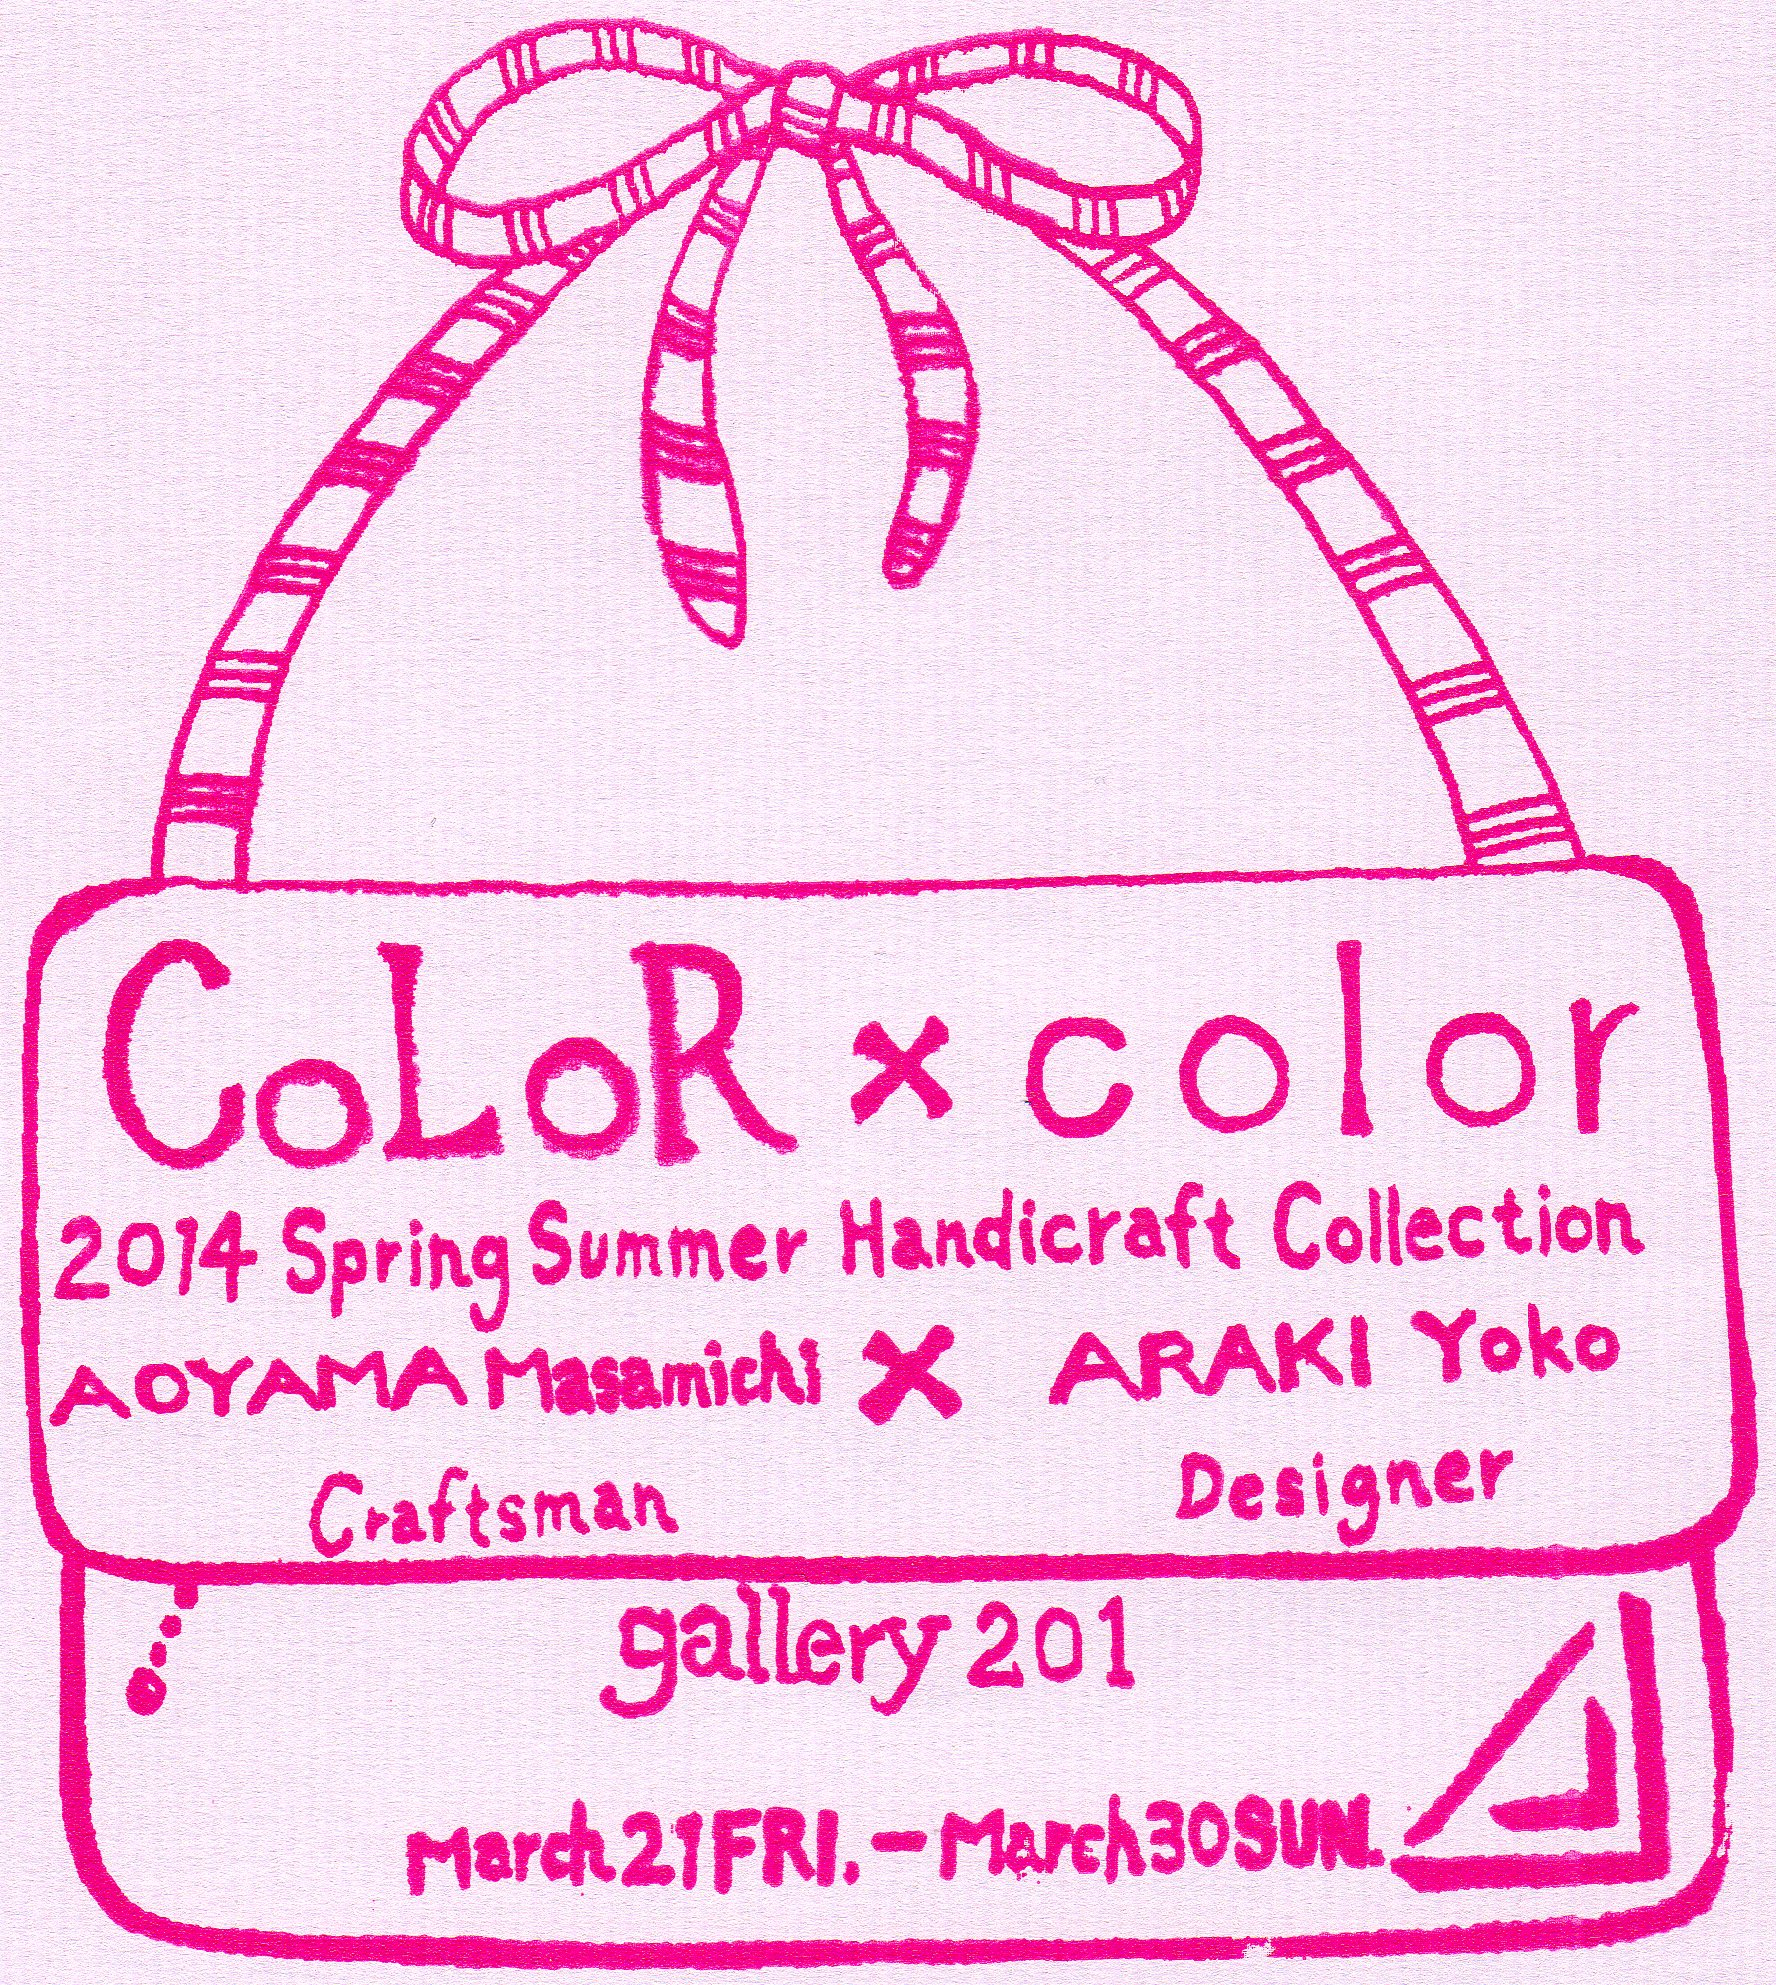 CoLoR×color -2014 Spring Summer Handicraft Collection ...